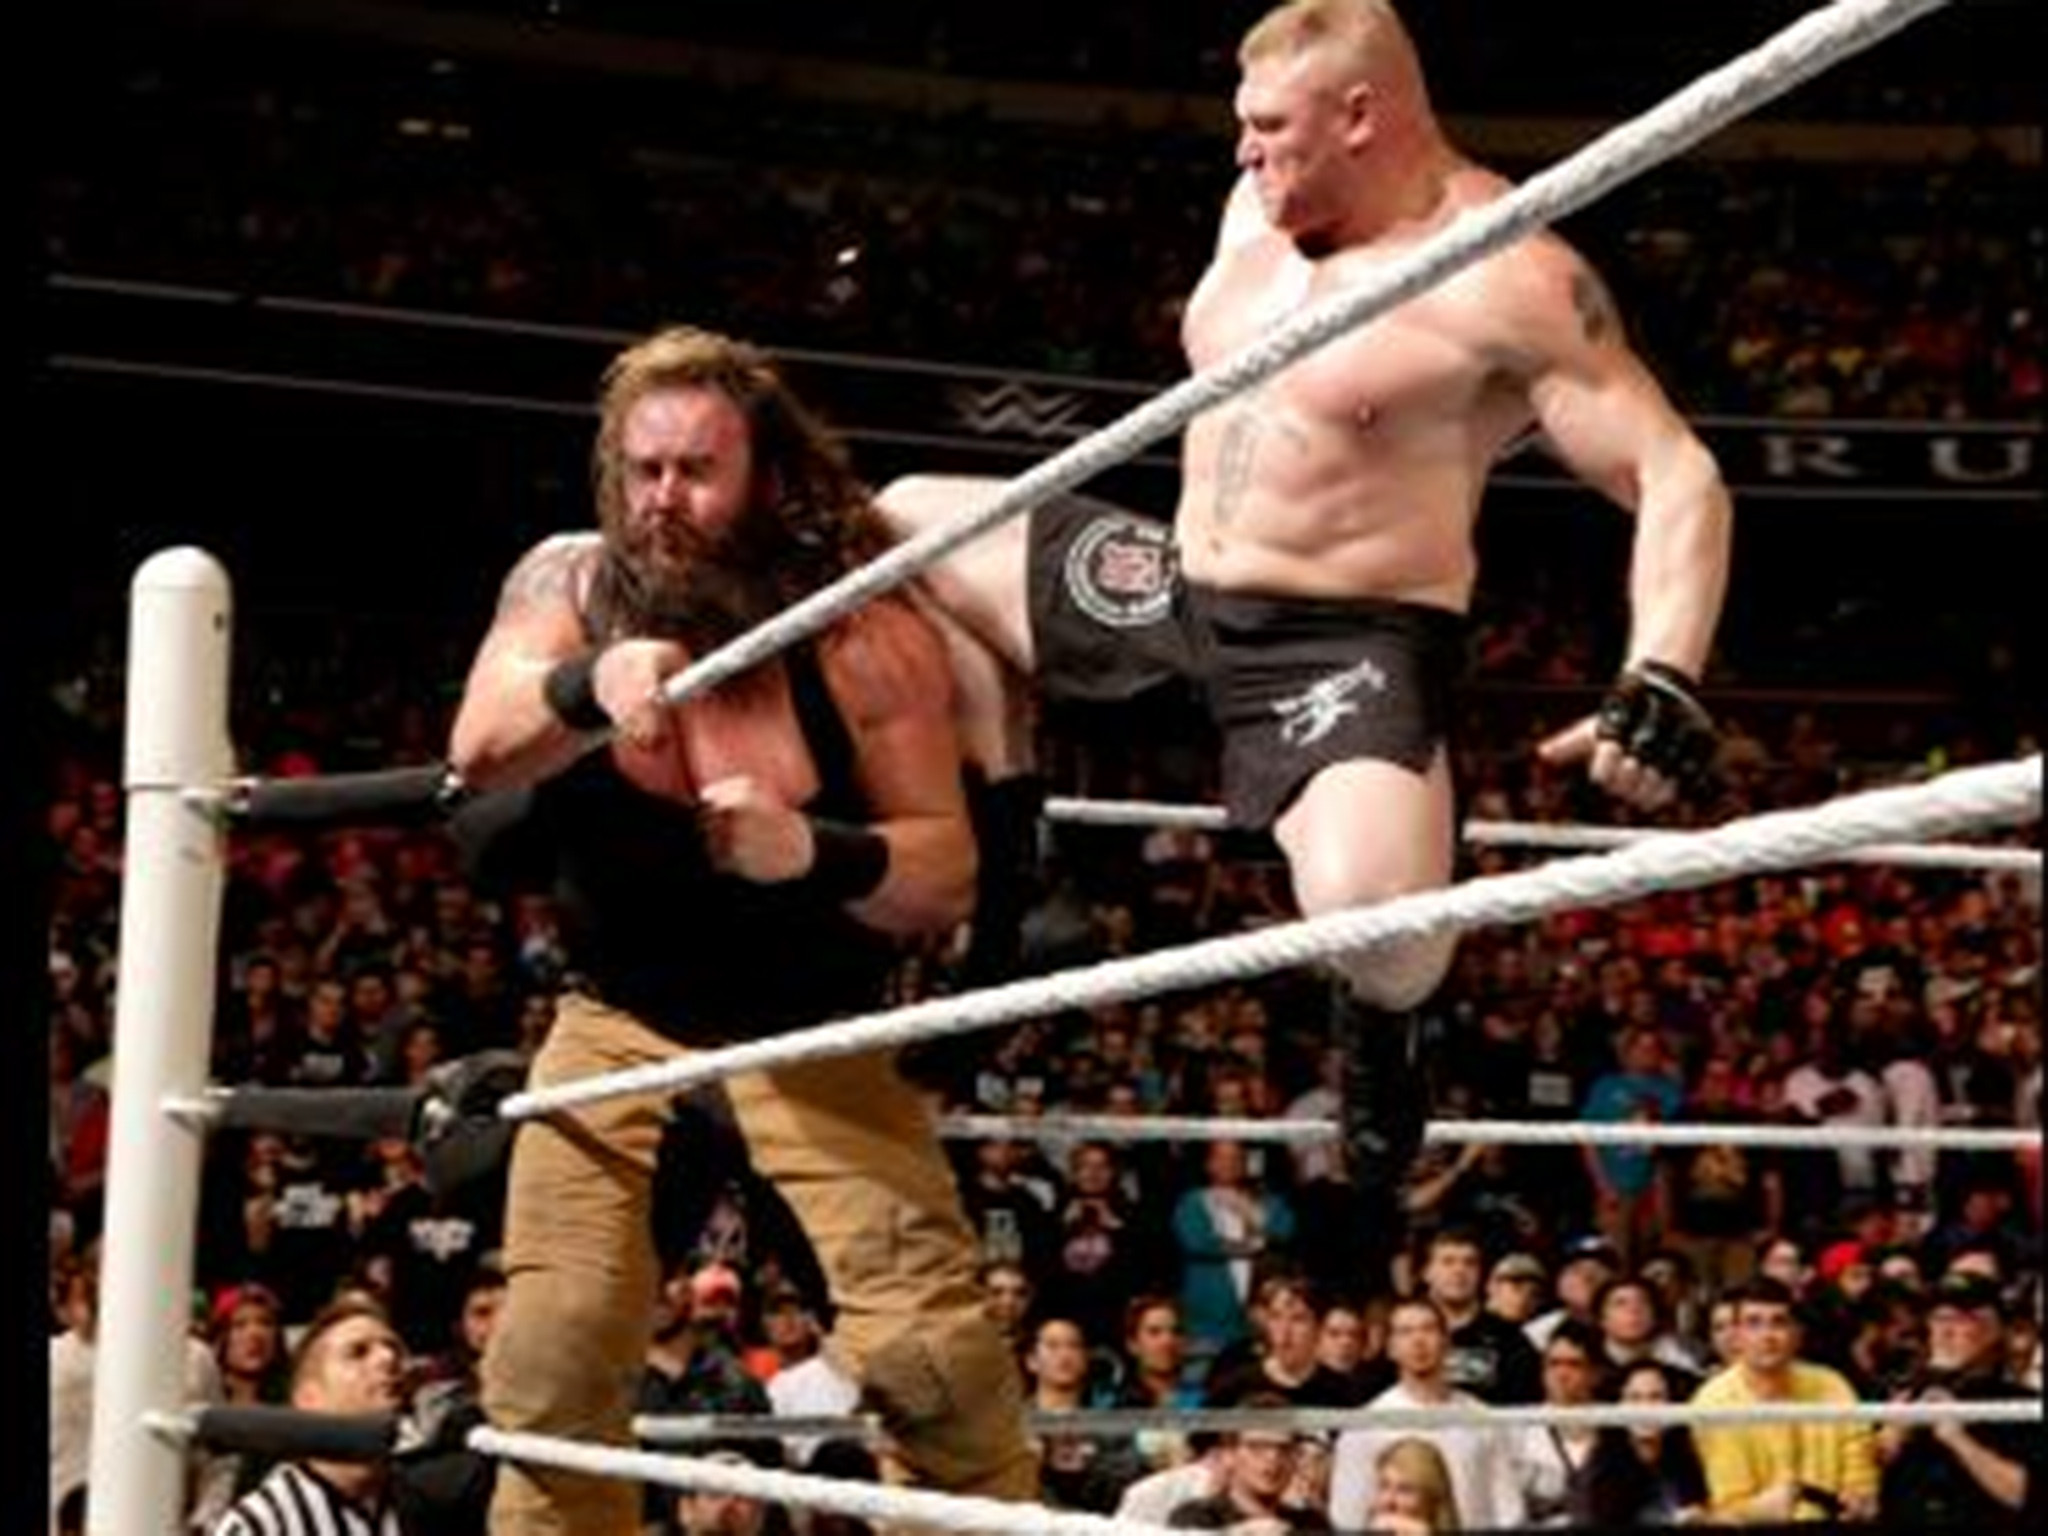 2048x1536 Royal Rumble 2016 results: Roman Reigns? Triple H? Braun Strowman? Brock  Lesnar? Who recorded the most eliminations? | The Independent